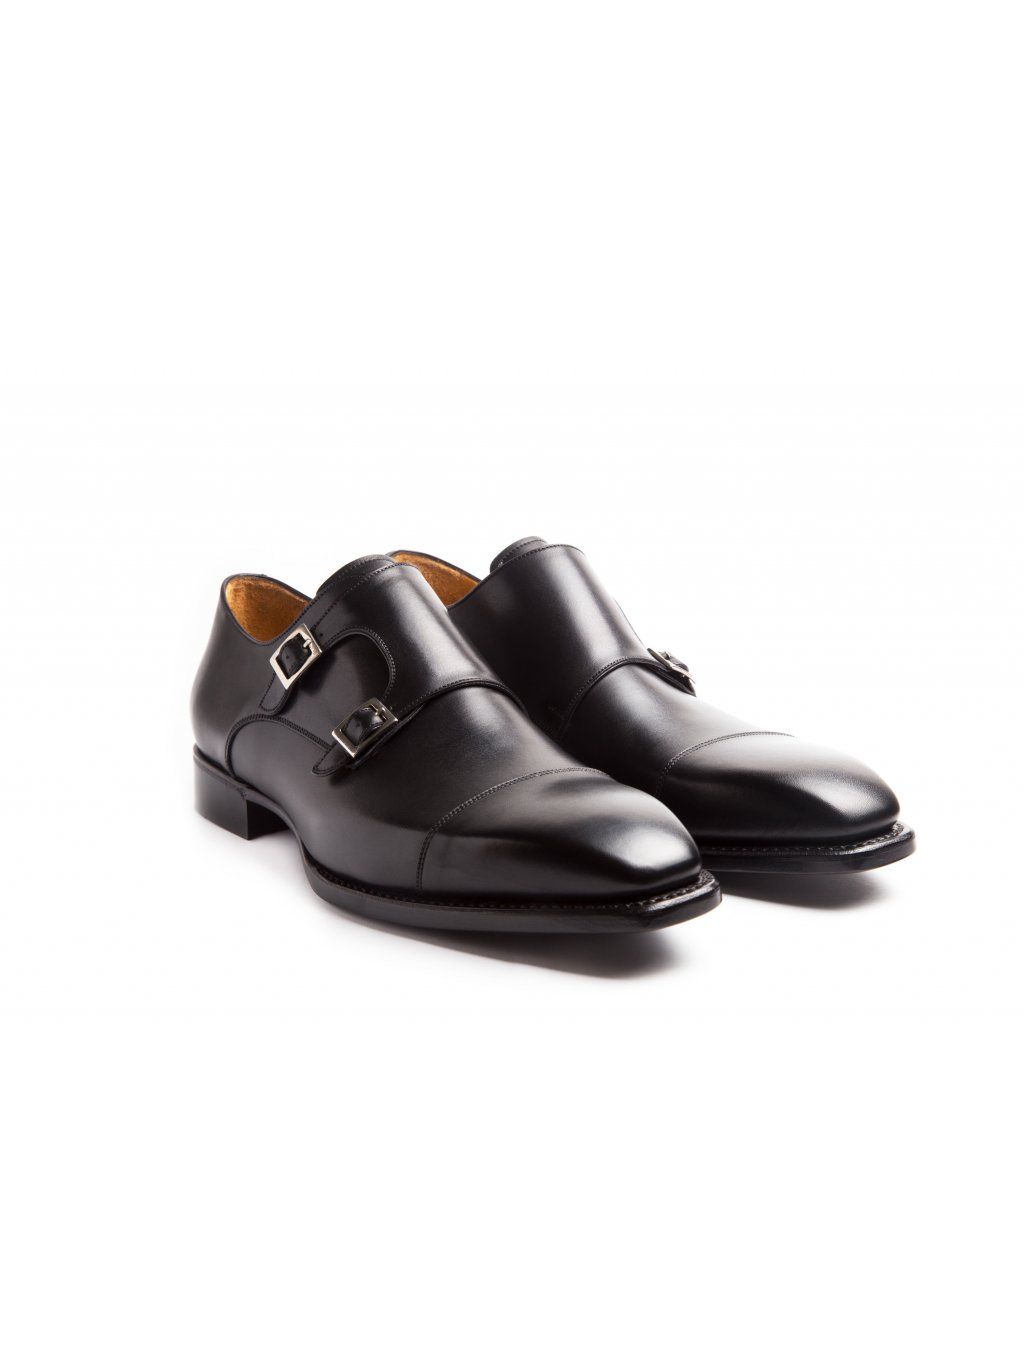 Boty double monks black